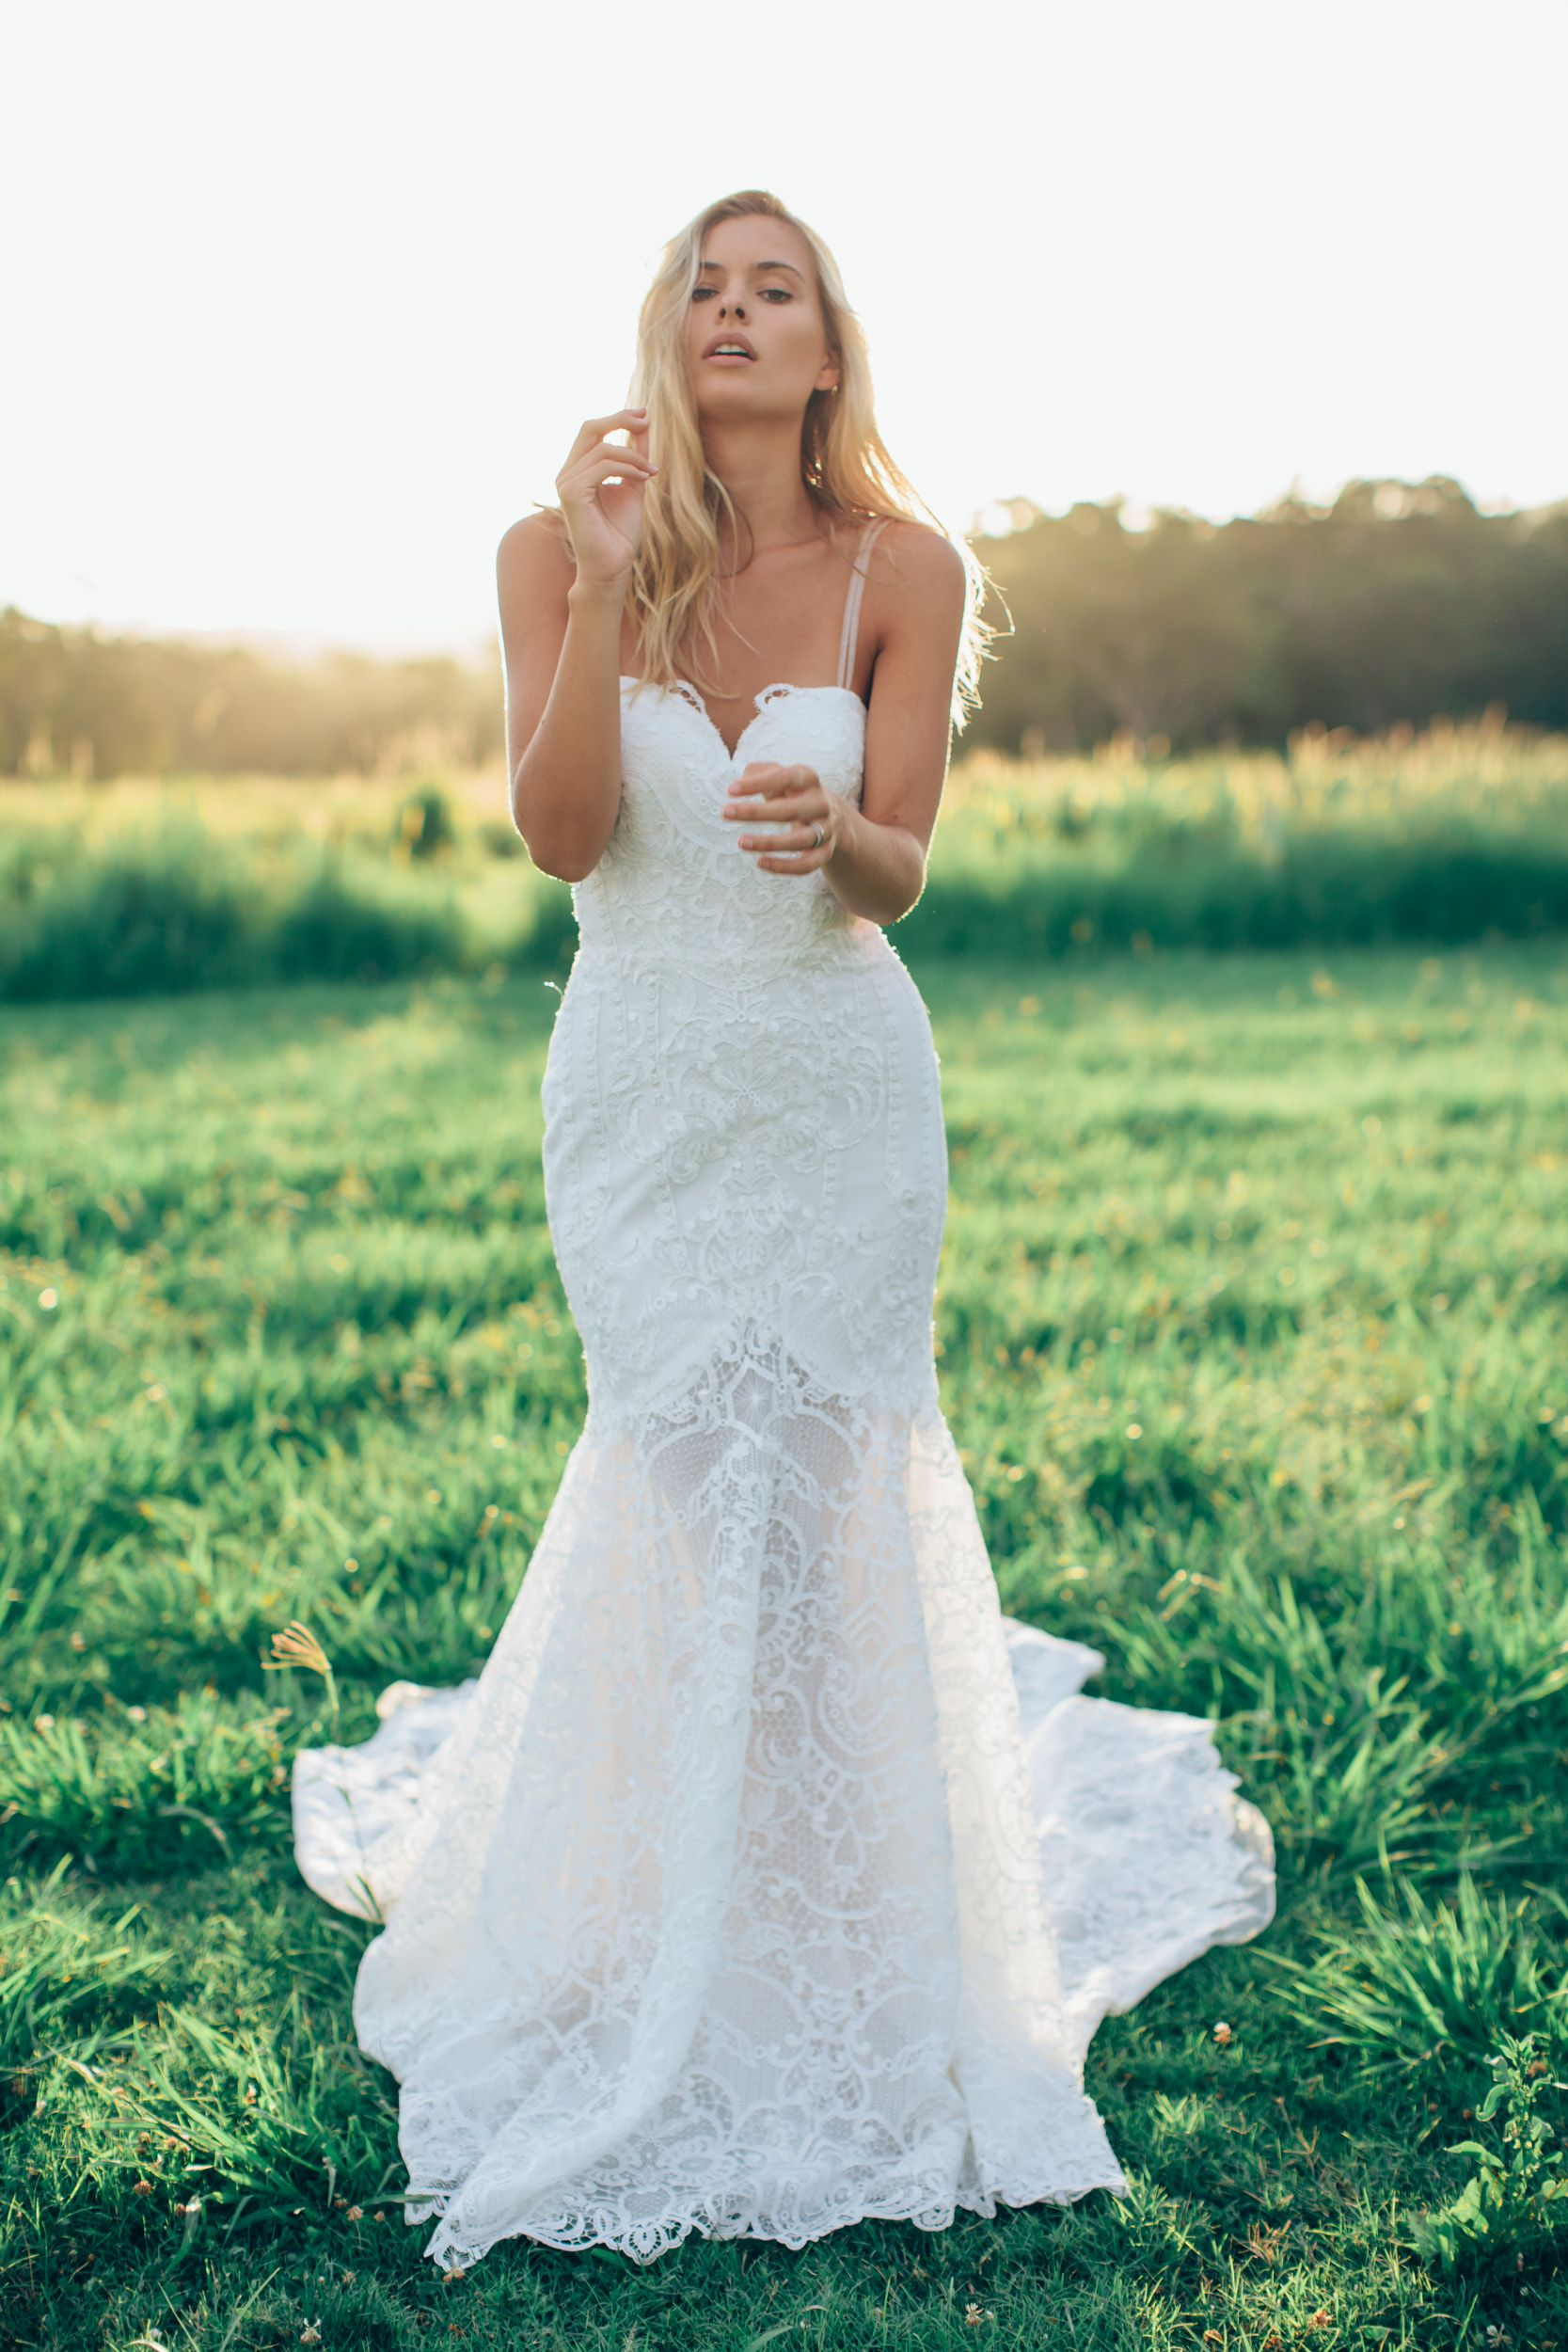 Low back wedding dress danni httpmadewithlovebridal other made with love danni wedding dress currently for sale at off retail ombrellifo Choice Image